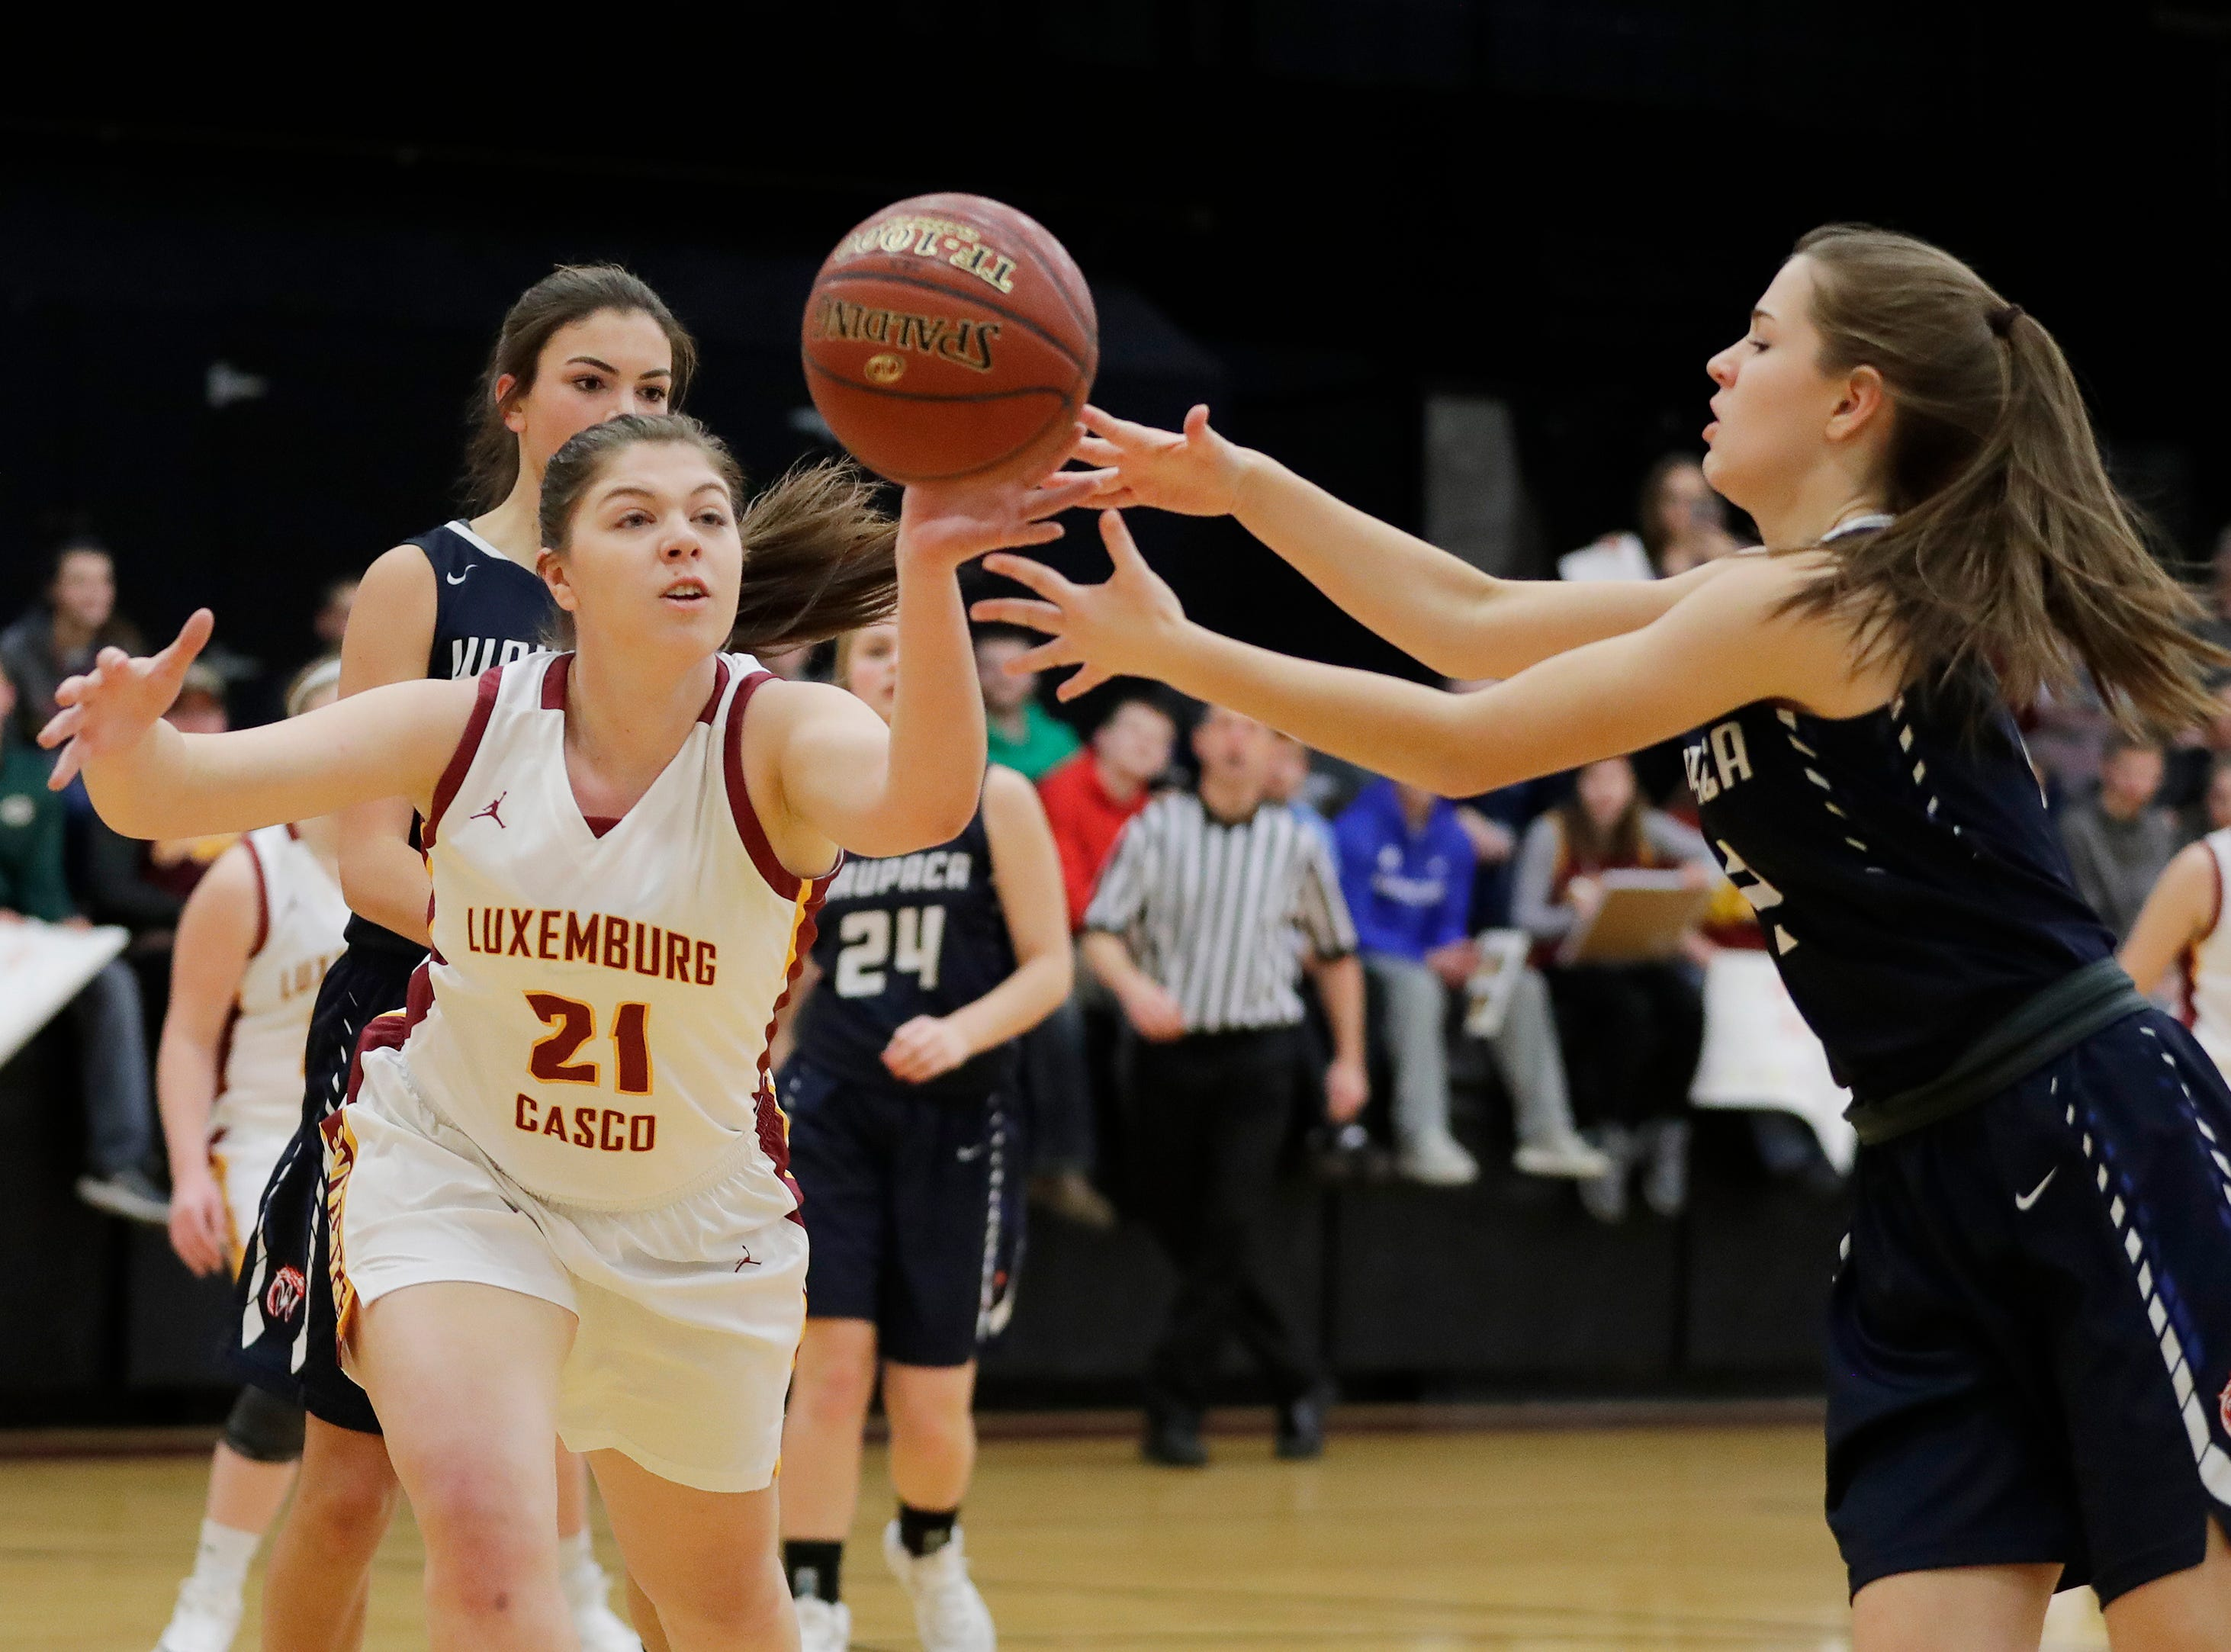 Luxemburg-Casco's Paige Skubal (21) goes for a rebound against Waupaca's Ella Snyder (2) in a girls basketball game at Luxemburg-Casco high school on Thursday, January 10, 2019 in Luxemburg, Wis.